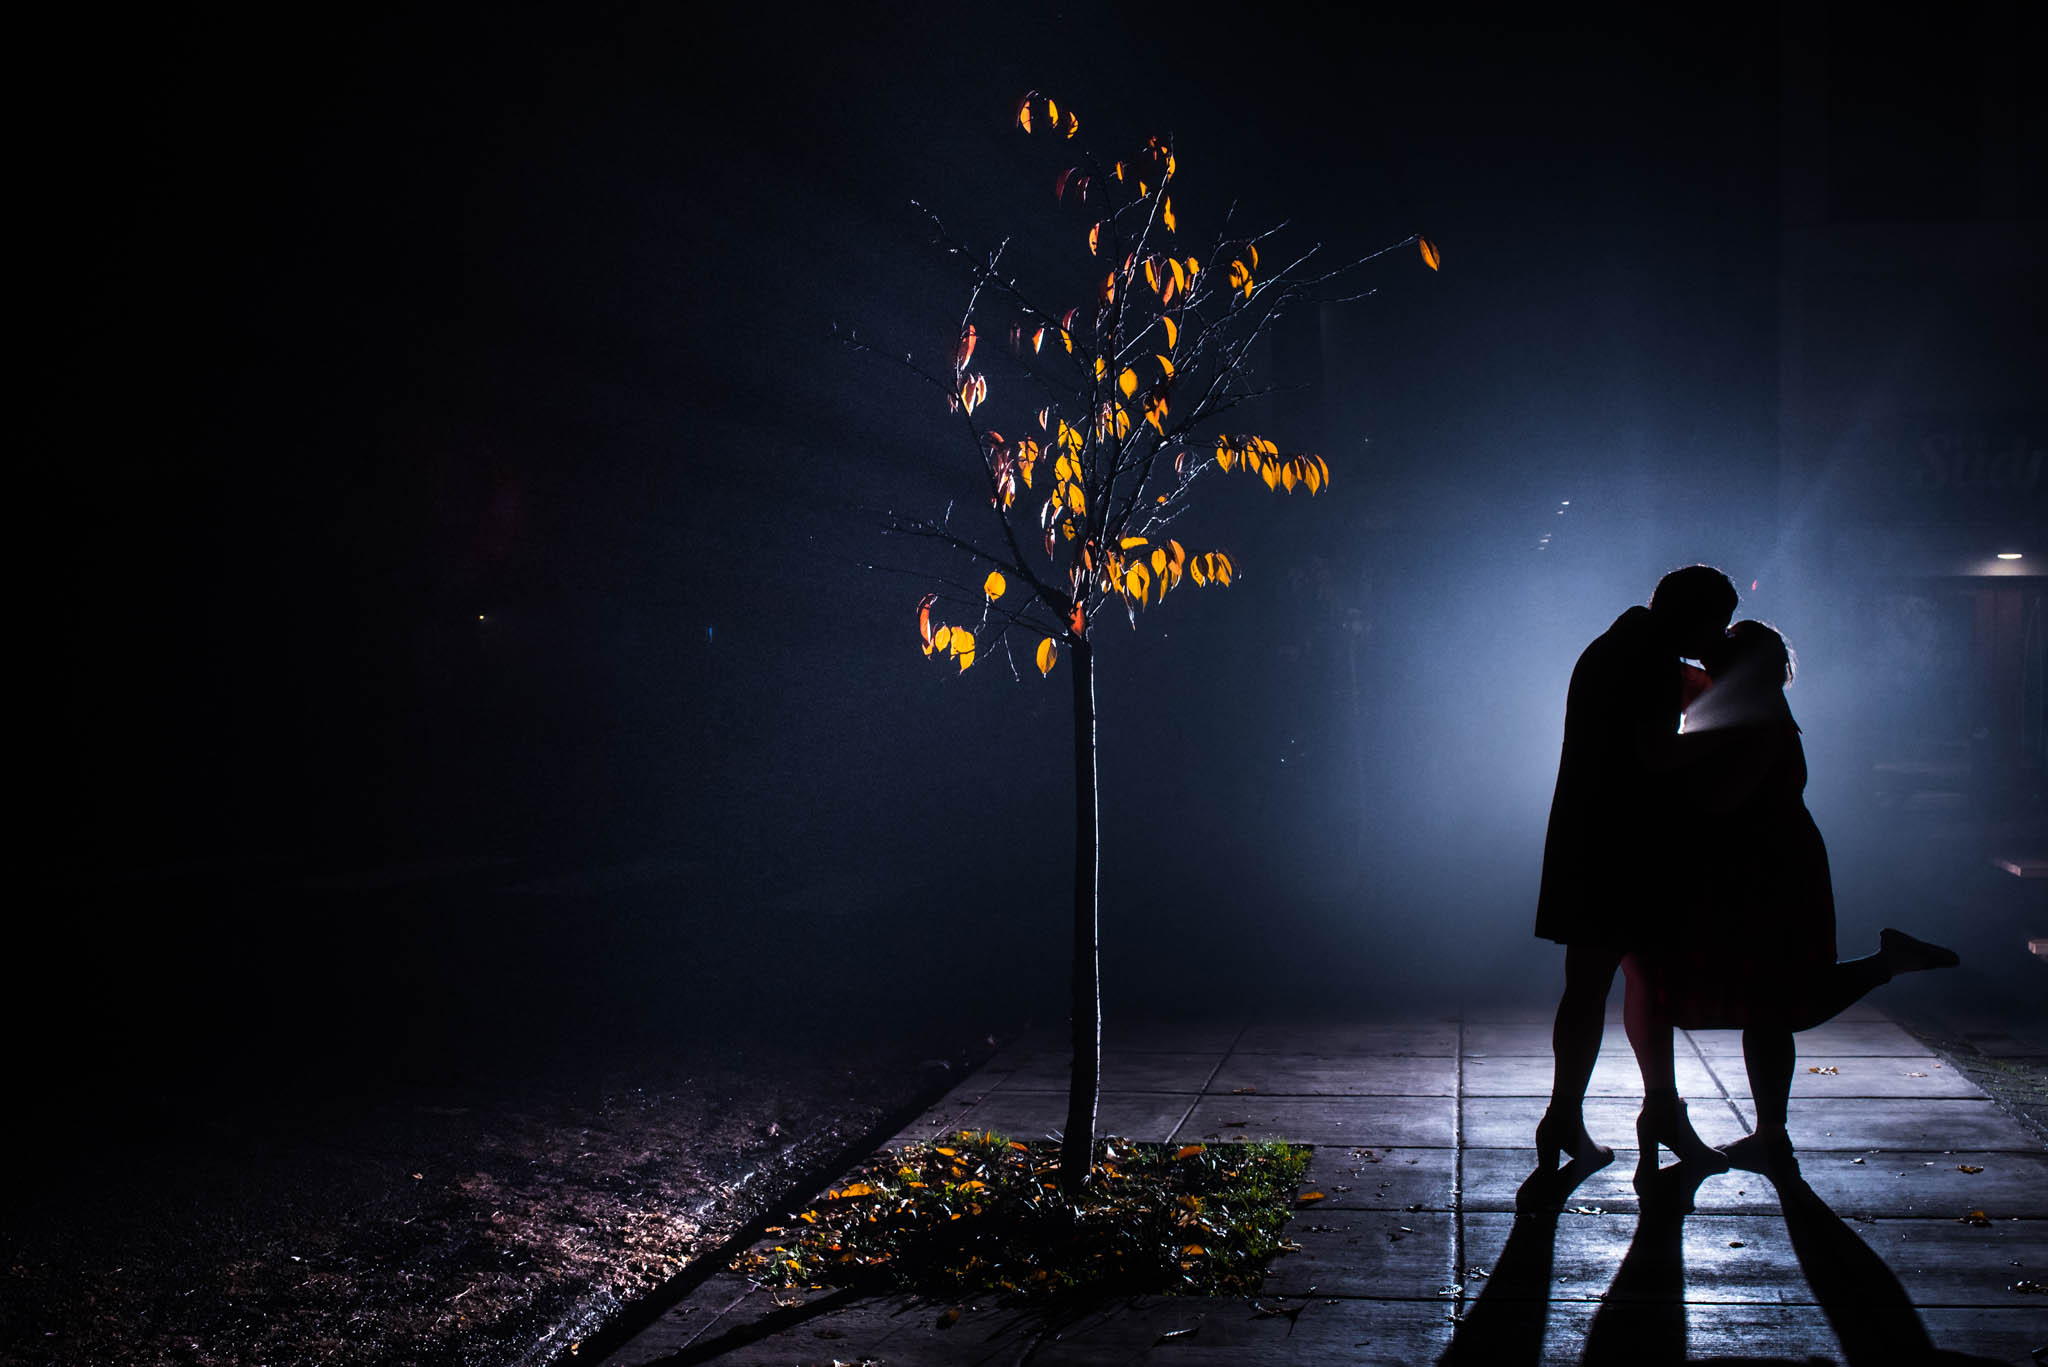 Silhouette photograph of wedding couple on misty street